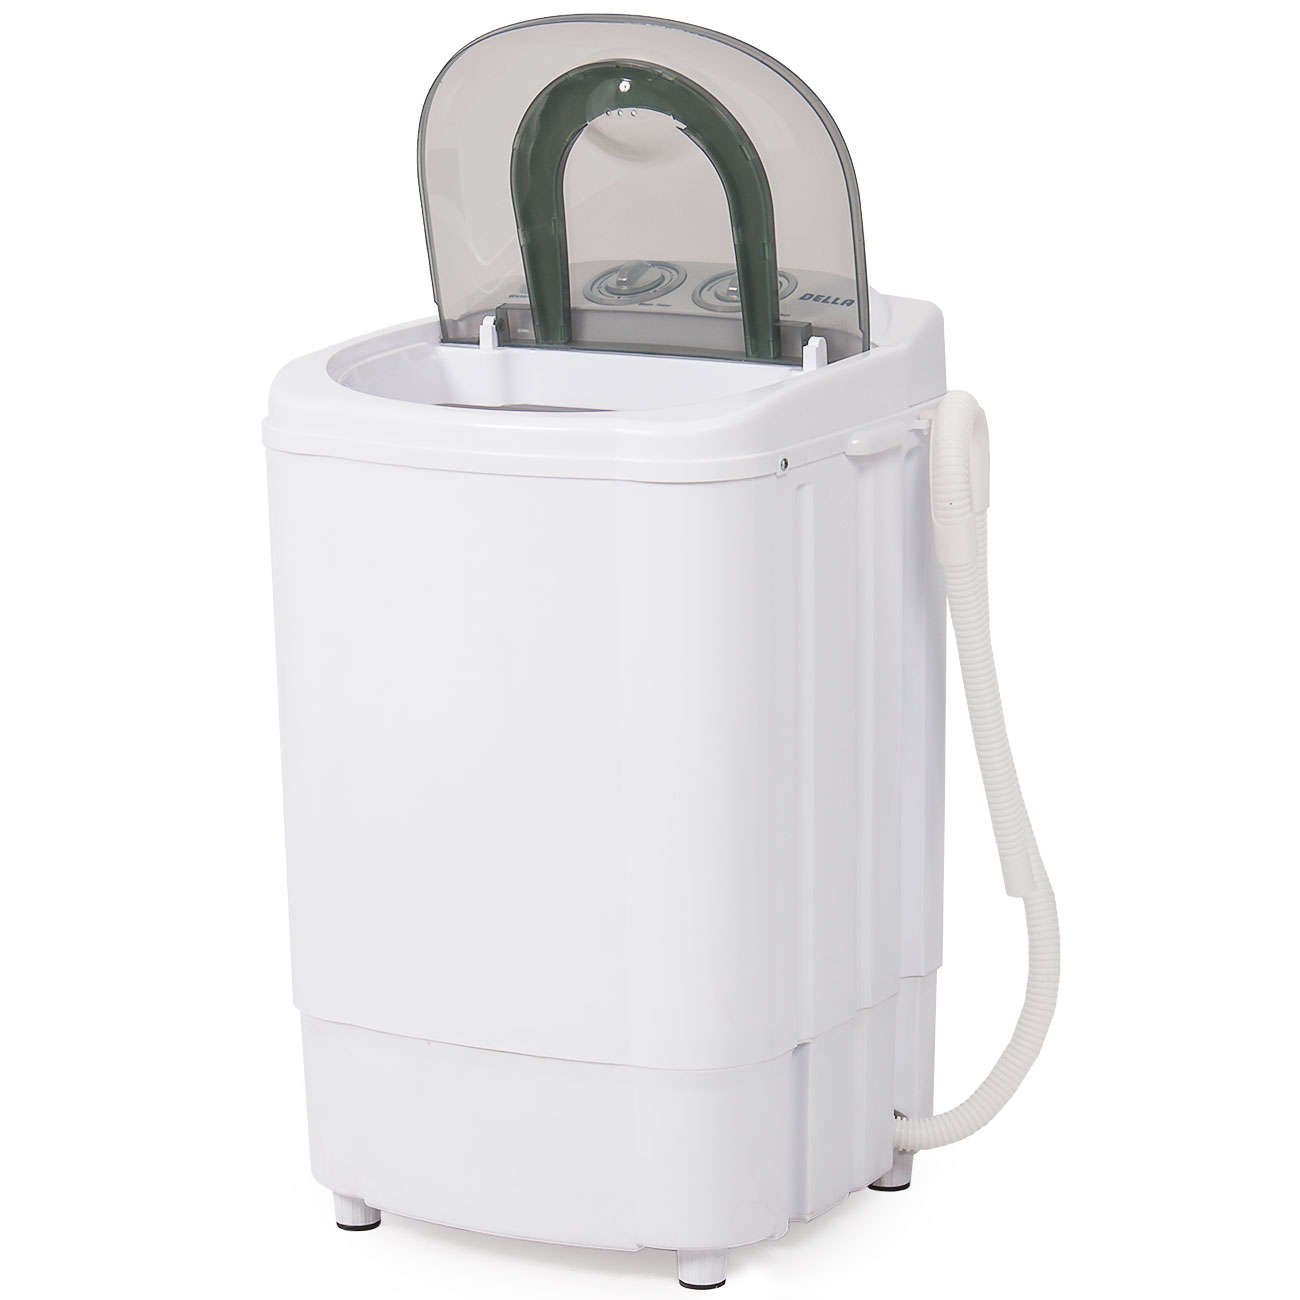 Electric Small Mini Portable Compact Washer Washing